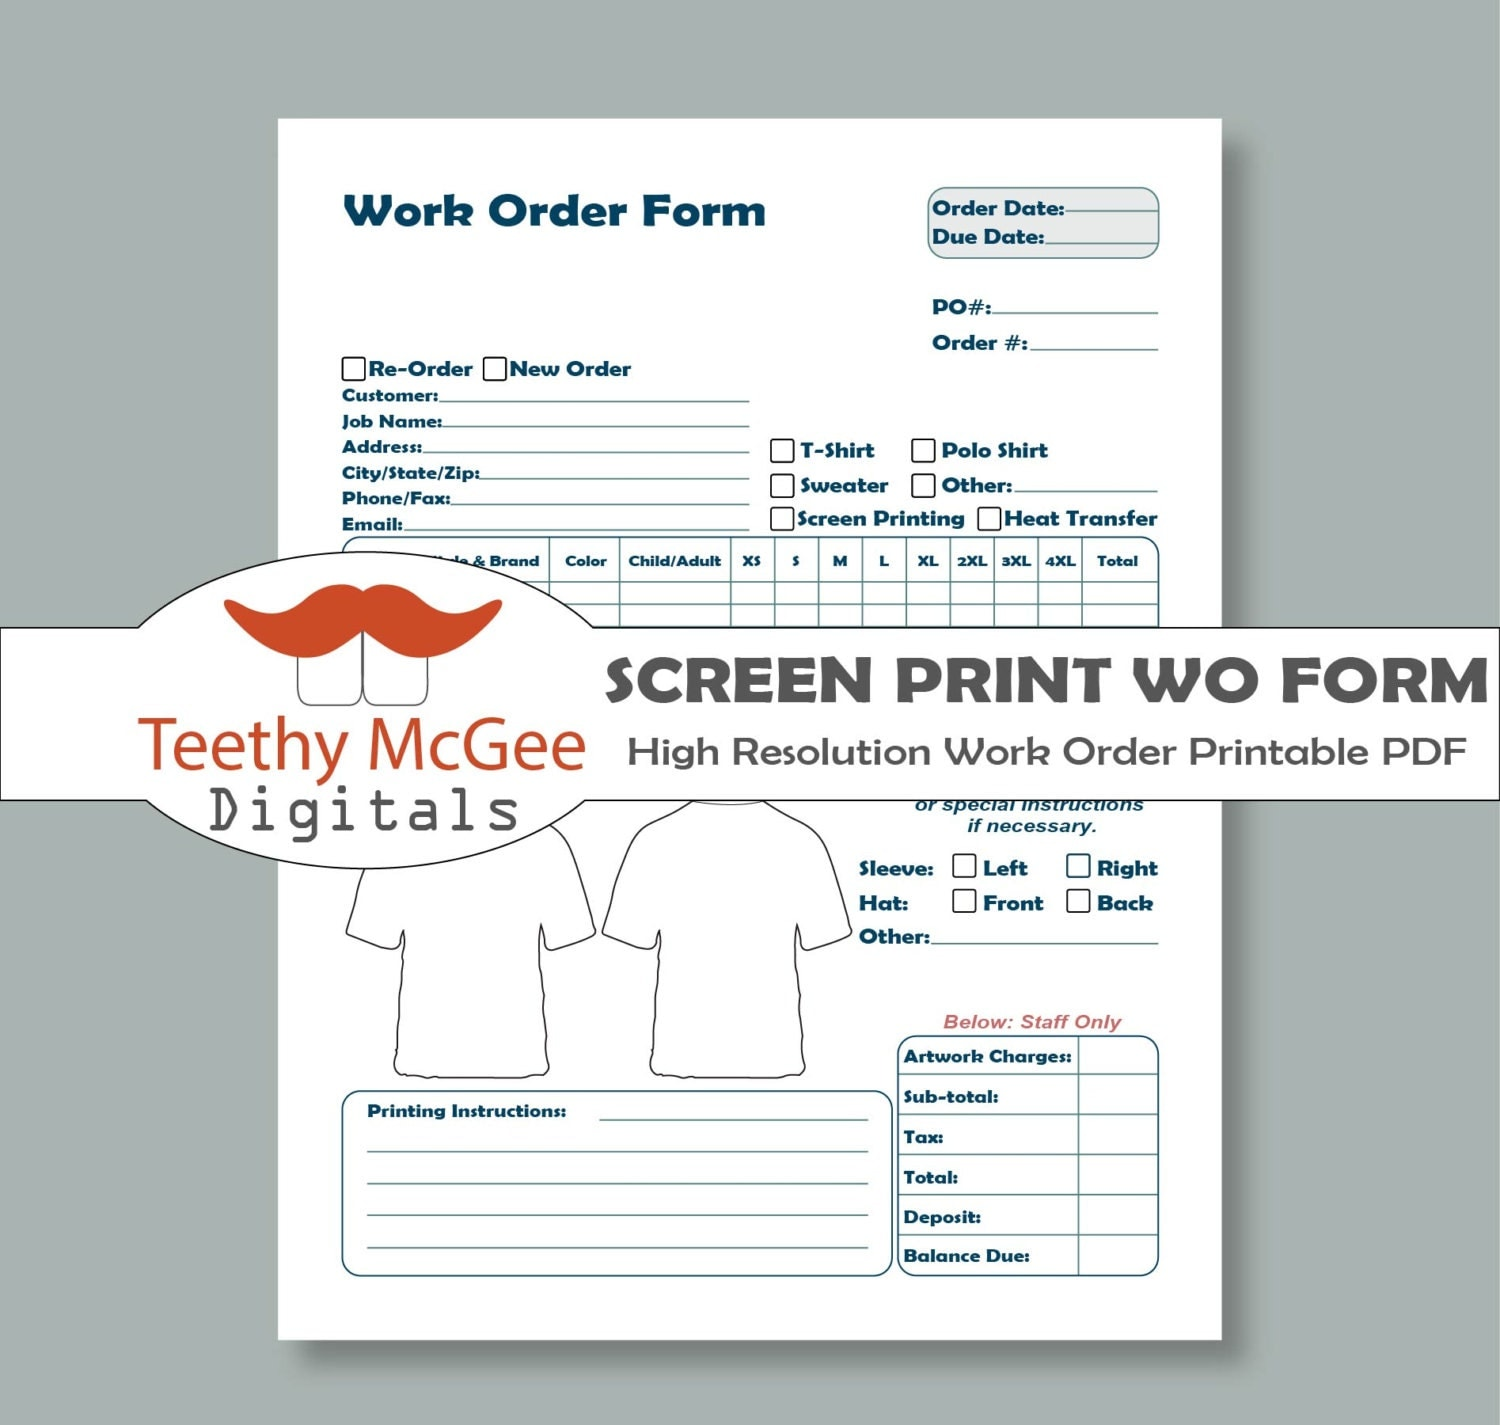 Work order form for screen printing instant download for Embroidery order form template free